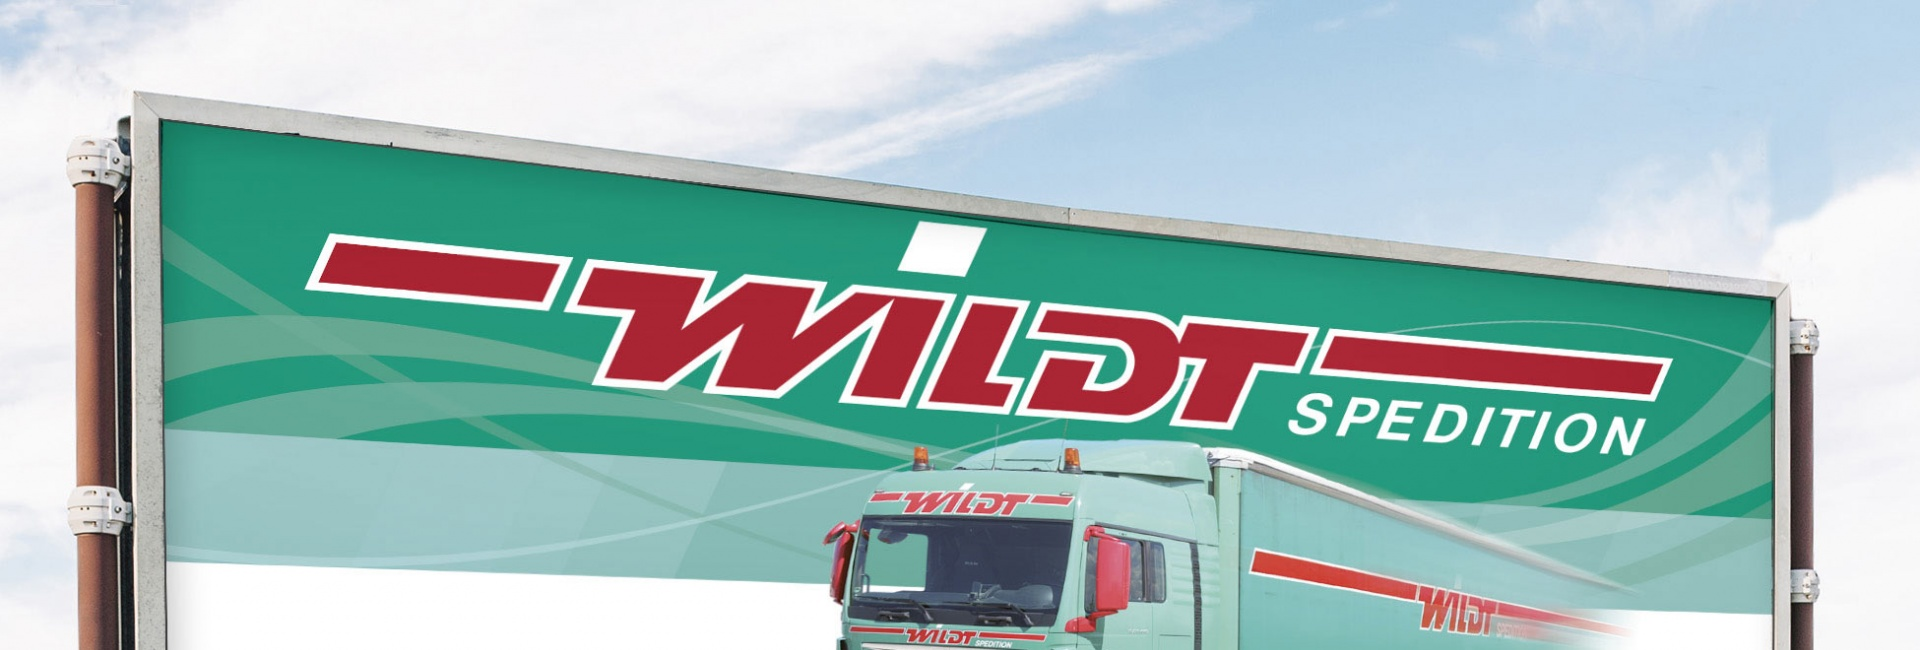 Spedition Wildt, Neues Leitsystem